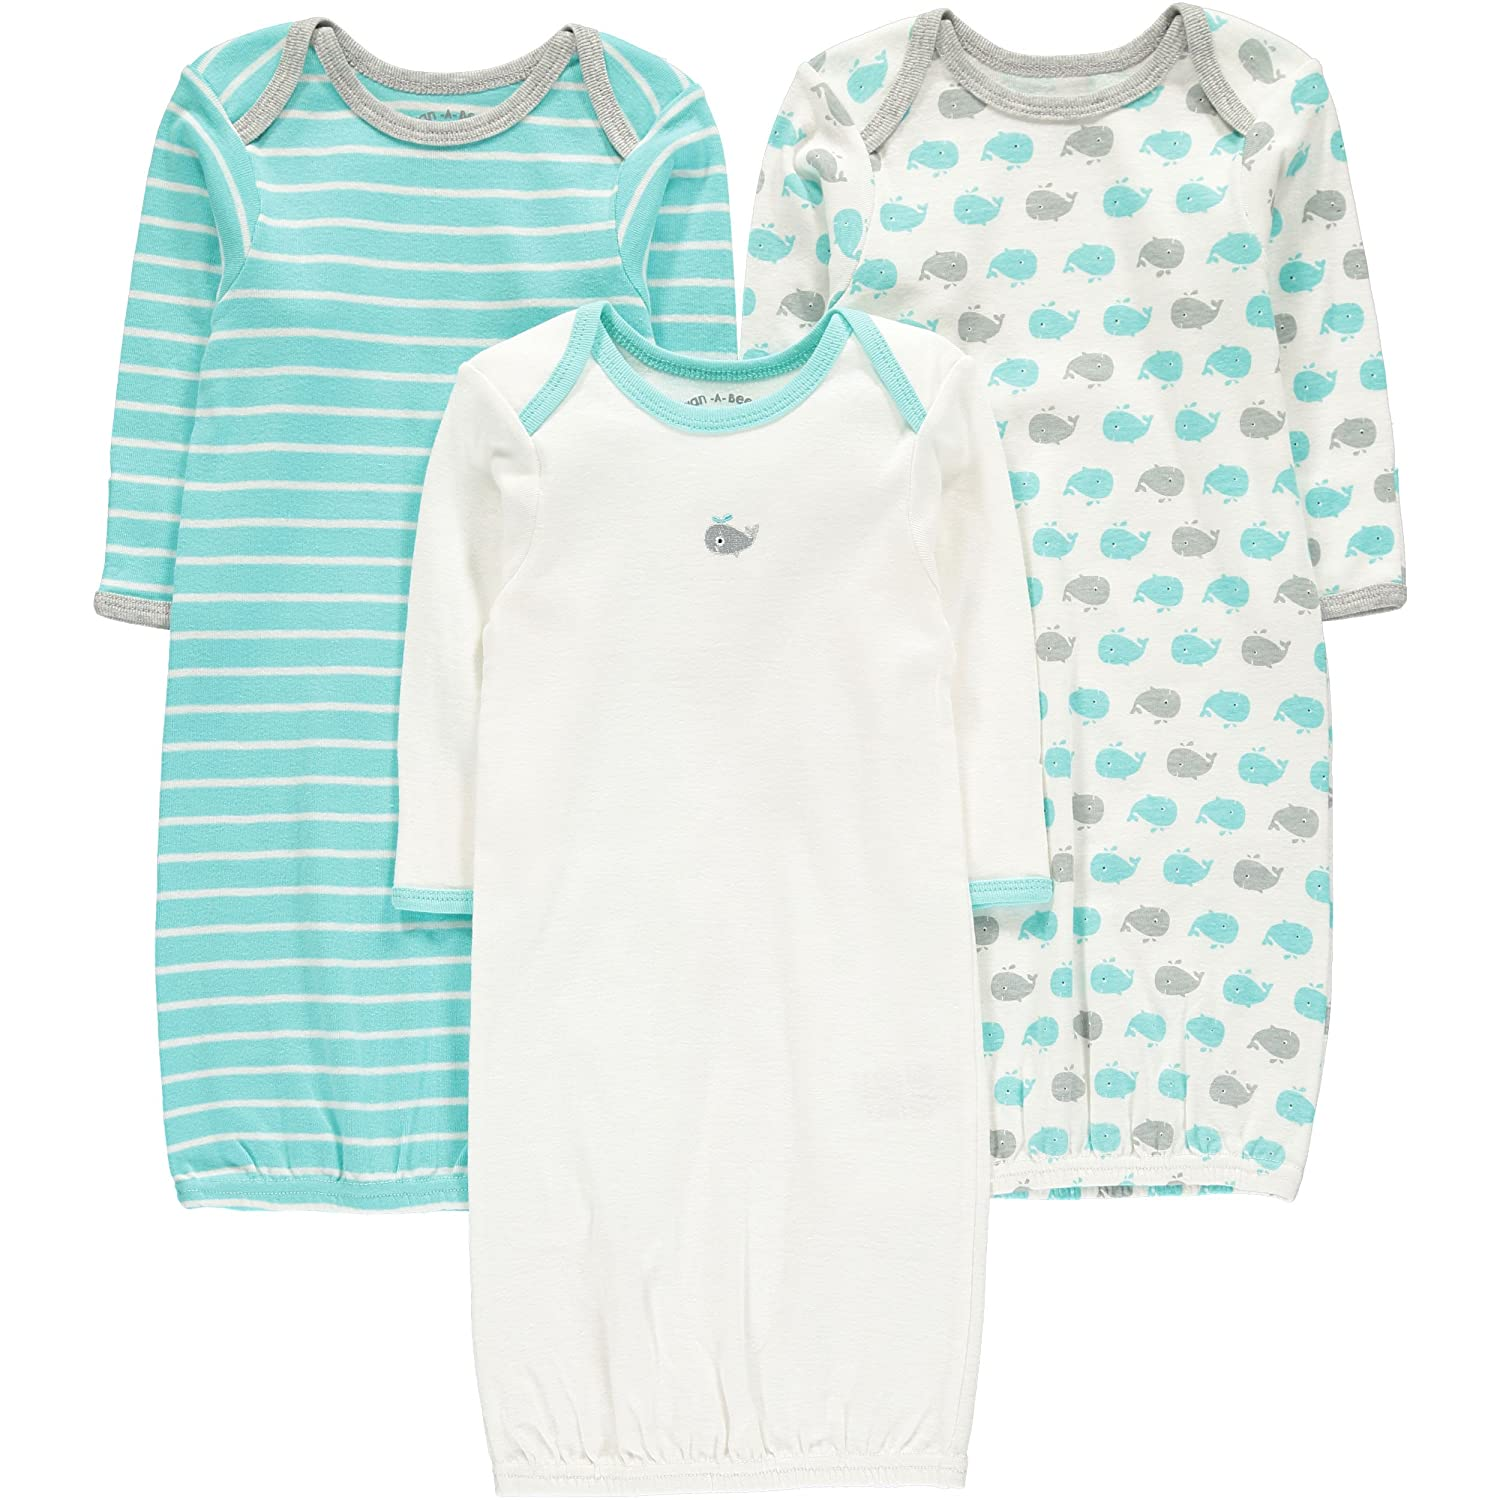 Wan-A-Beez Baby Boys' and Girls' 3 Pack Printed Gowns Turquoise Whale) WGNB0001